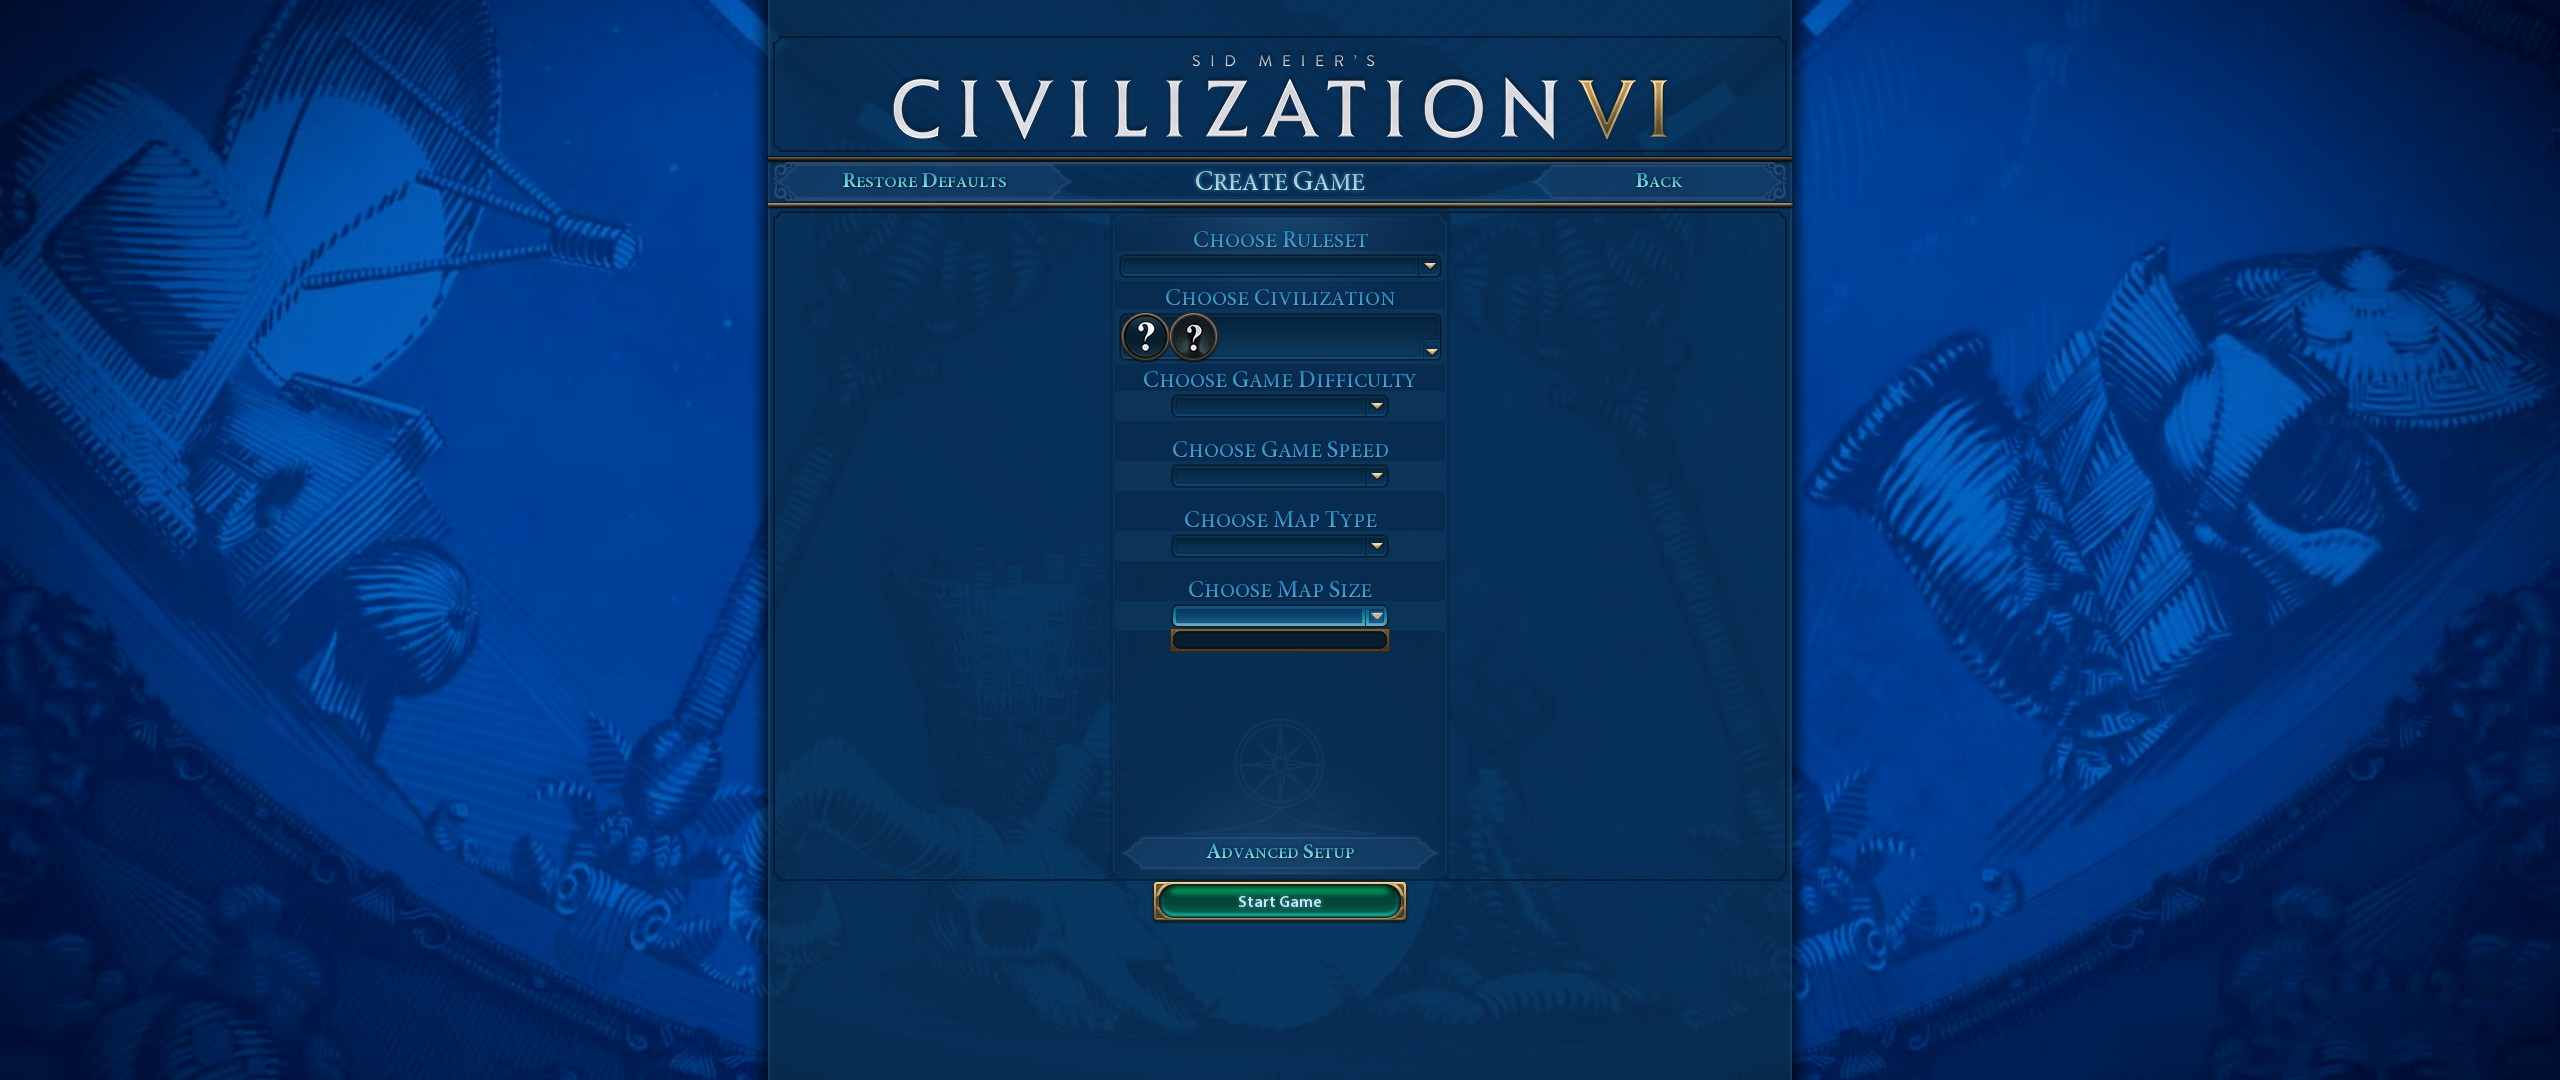 Unable to run the game: empty menu · Issue #94 · Gedemon/Civ6-YnAMP